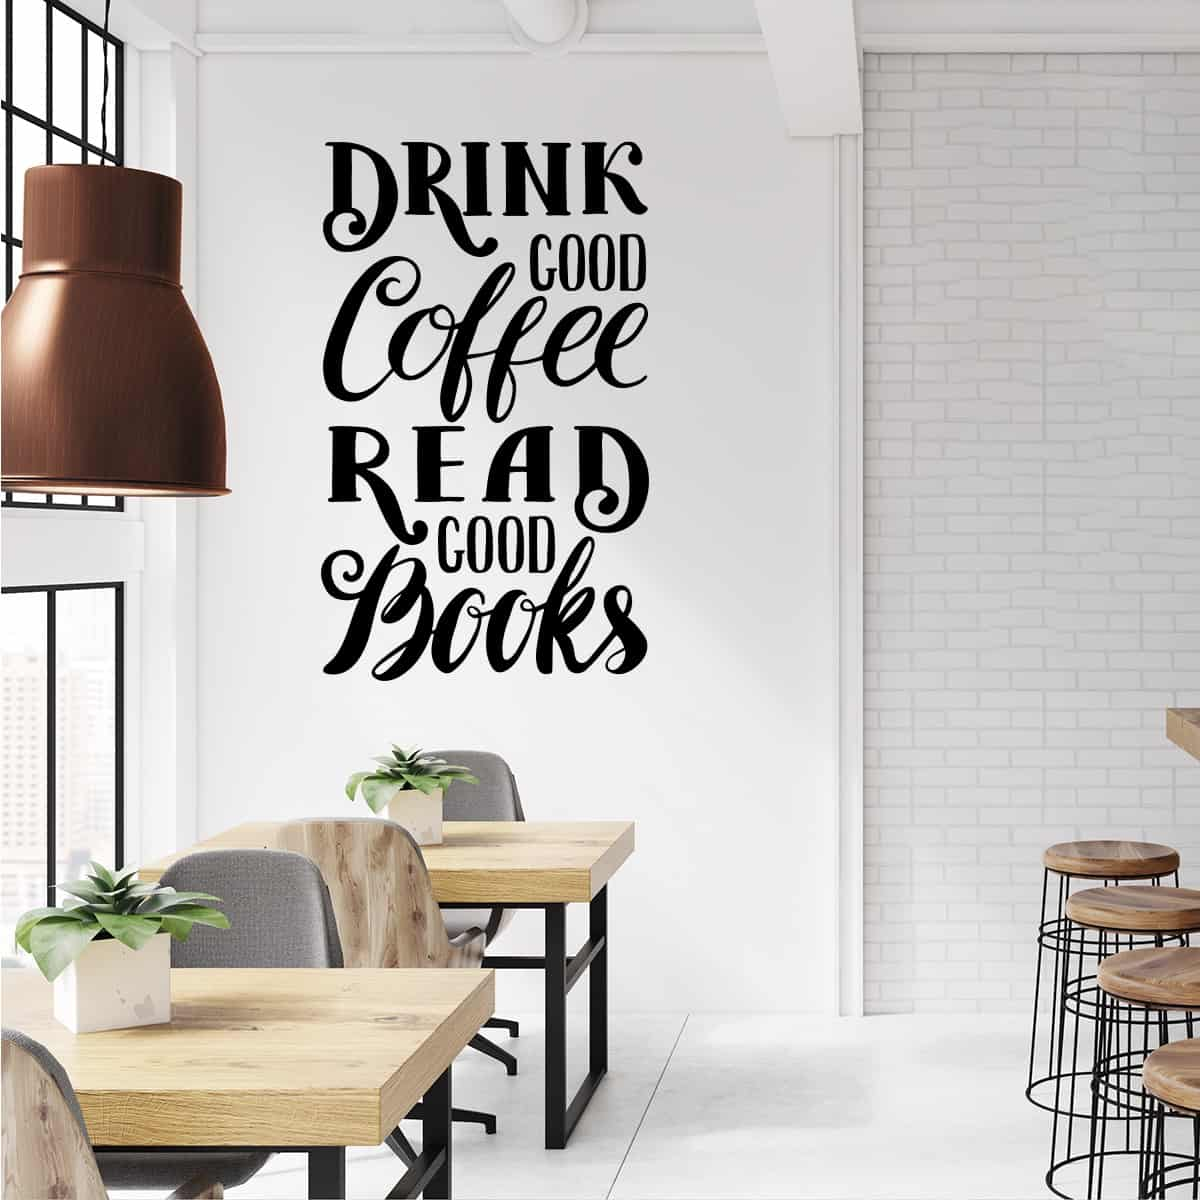 drink-coffee-and-read-books-murale-decorazione